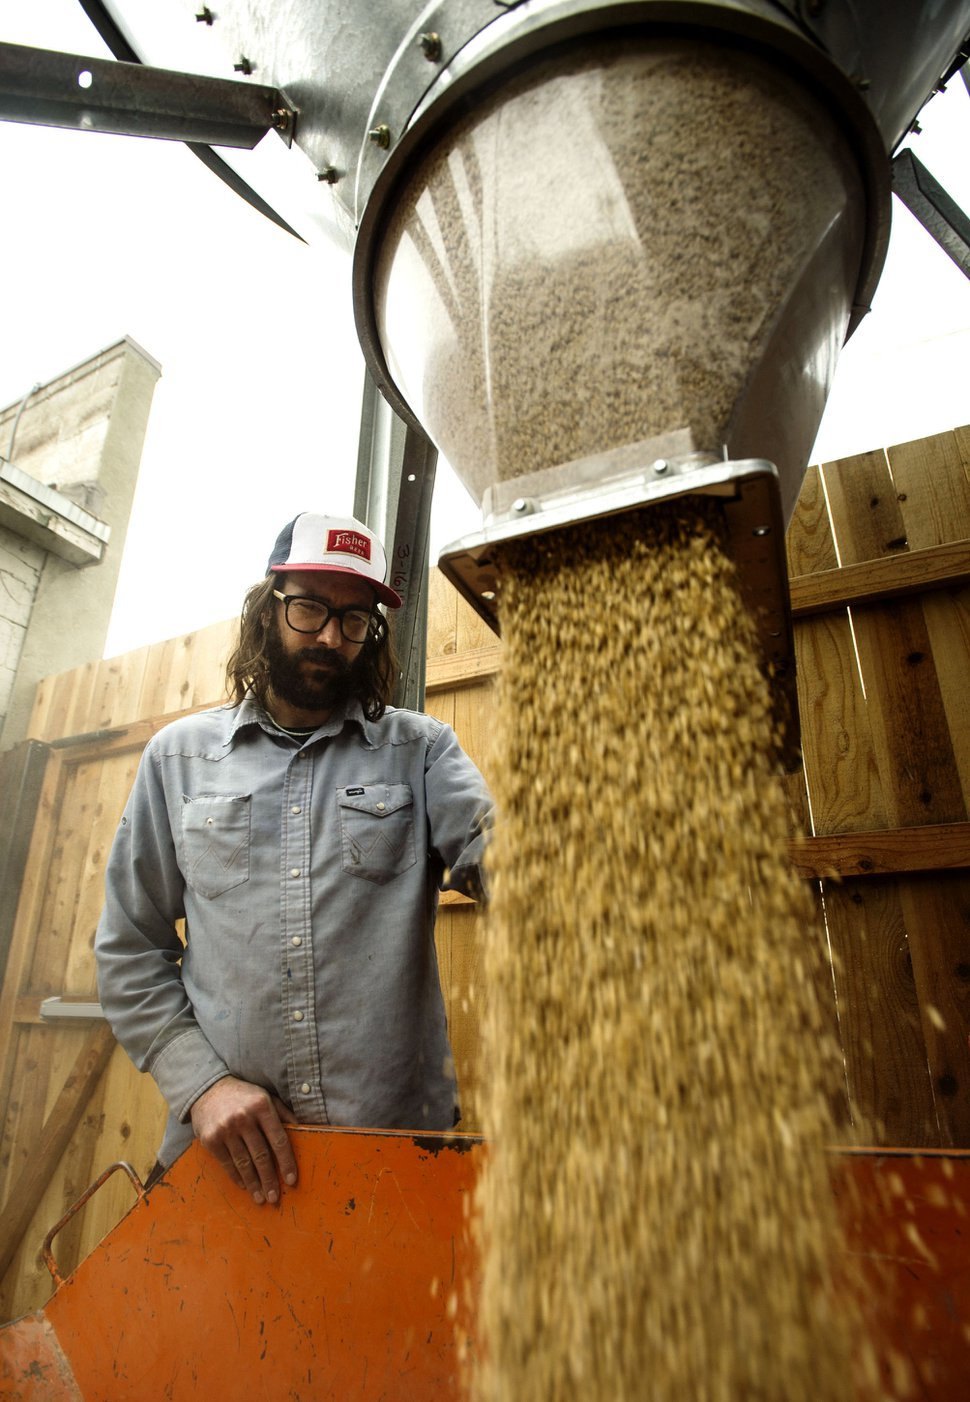 Steve Griffin | The Salt Lake Tribune Colby Frazier prepares some grain at the new A. Fisher Brewing Company in Salt Lake City Friday February 17, 201. The brewery is one of the oldest names in Utah beer history. The brewery makes a modern-day comeback this month. Tom Fisher Riemondy, one of five partners who have resurrected A. Fisher Brewing Company, is the great, great grandson of Albert Fisher, a German immigrant who founded the original brewery in Utah in 1884. The brewery survived prohibition and flourished through the early 20th century, becoming one of the largest breweries to produce beer in the Intermountain West. In 1960, after a series of acquisitions by larger breweries, the label disappeared.